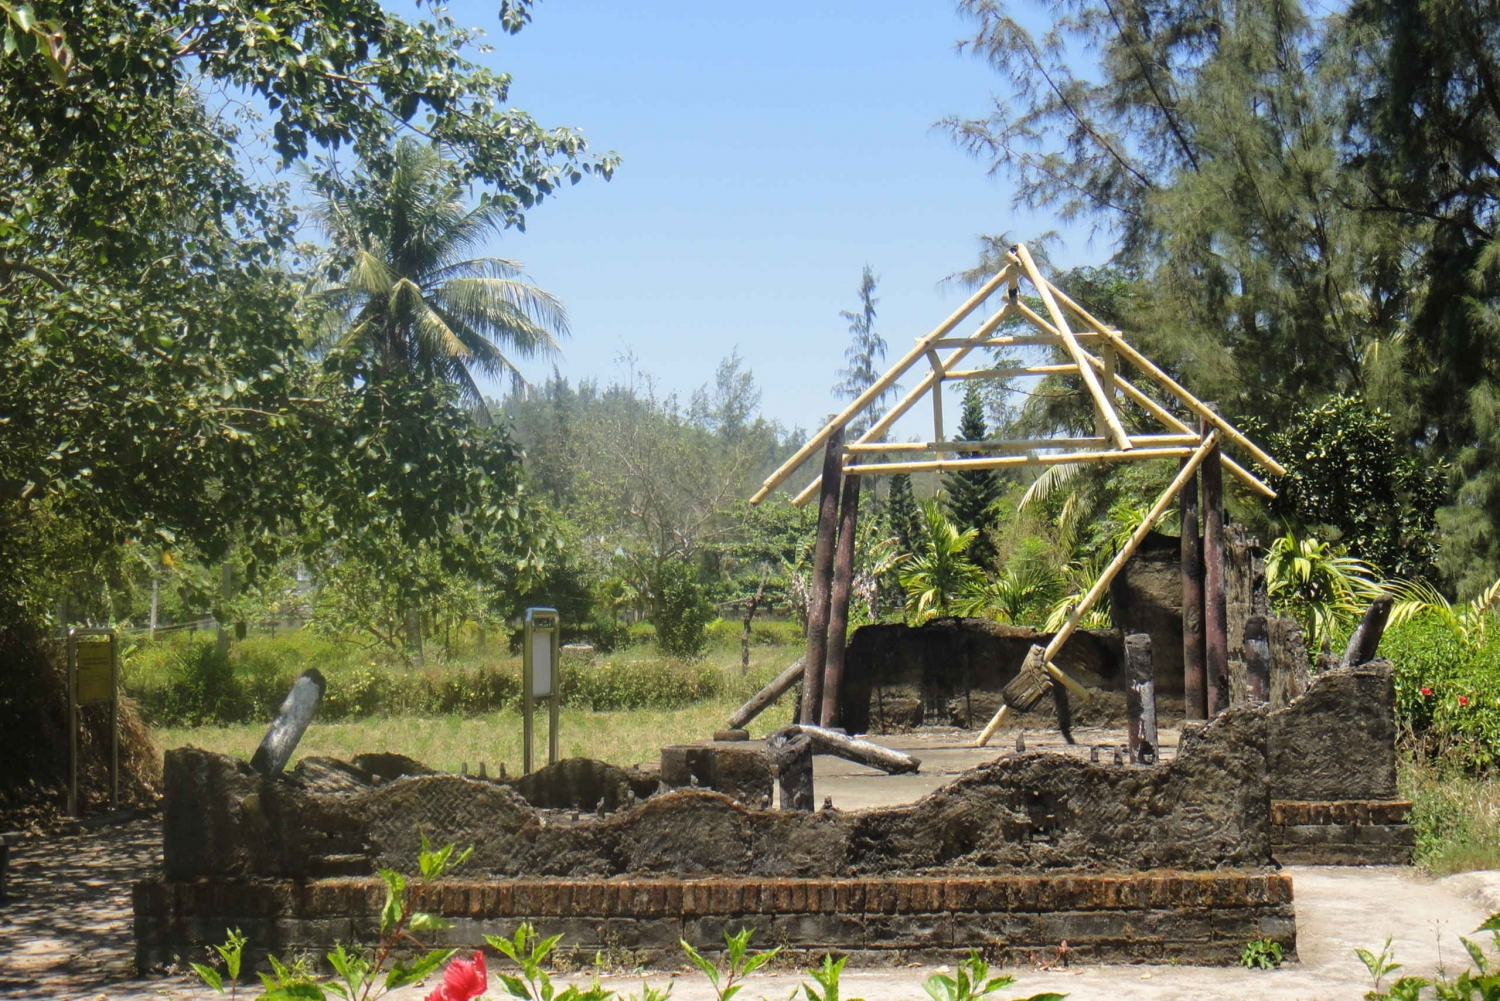 My Lai Massacre Full-Day Trip from Hoi An with Lunch